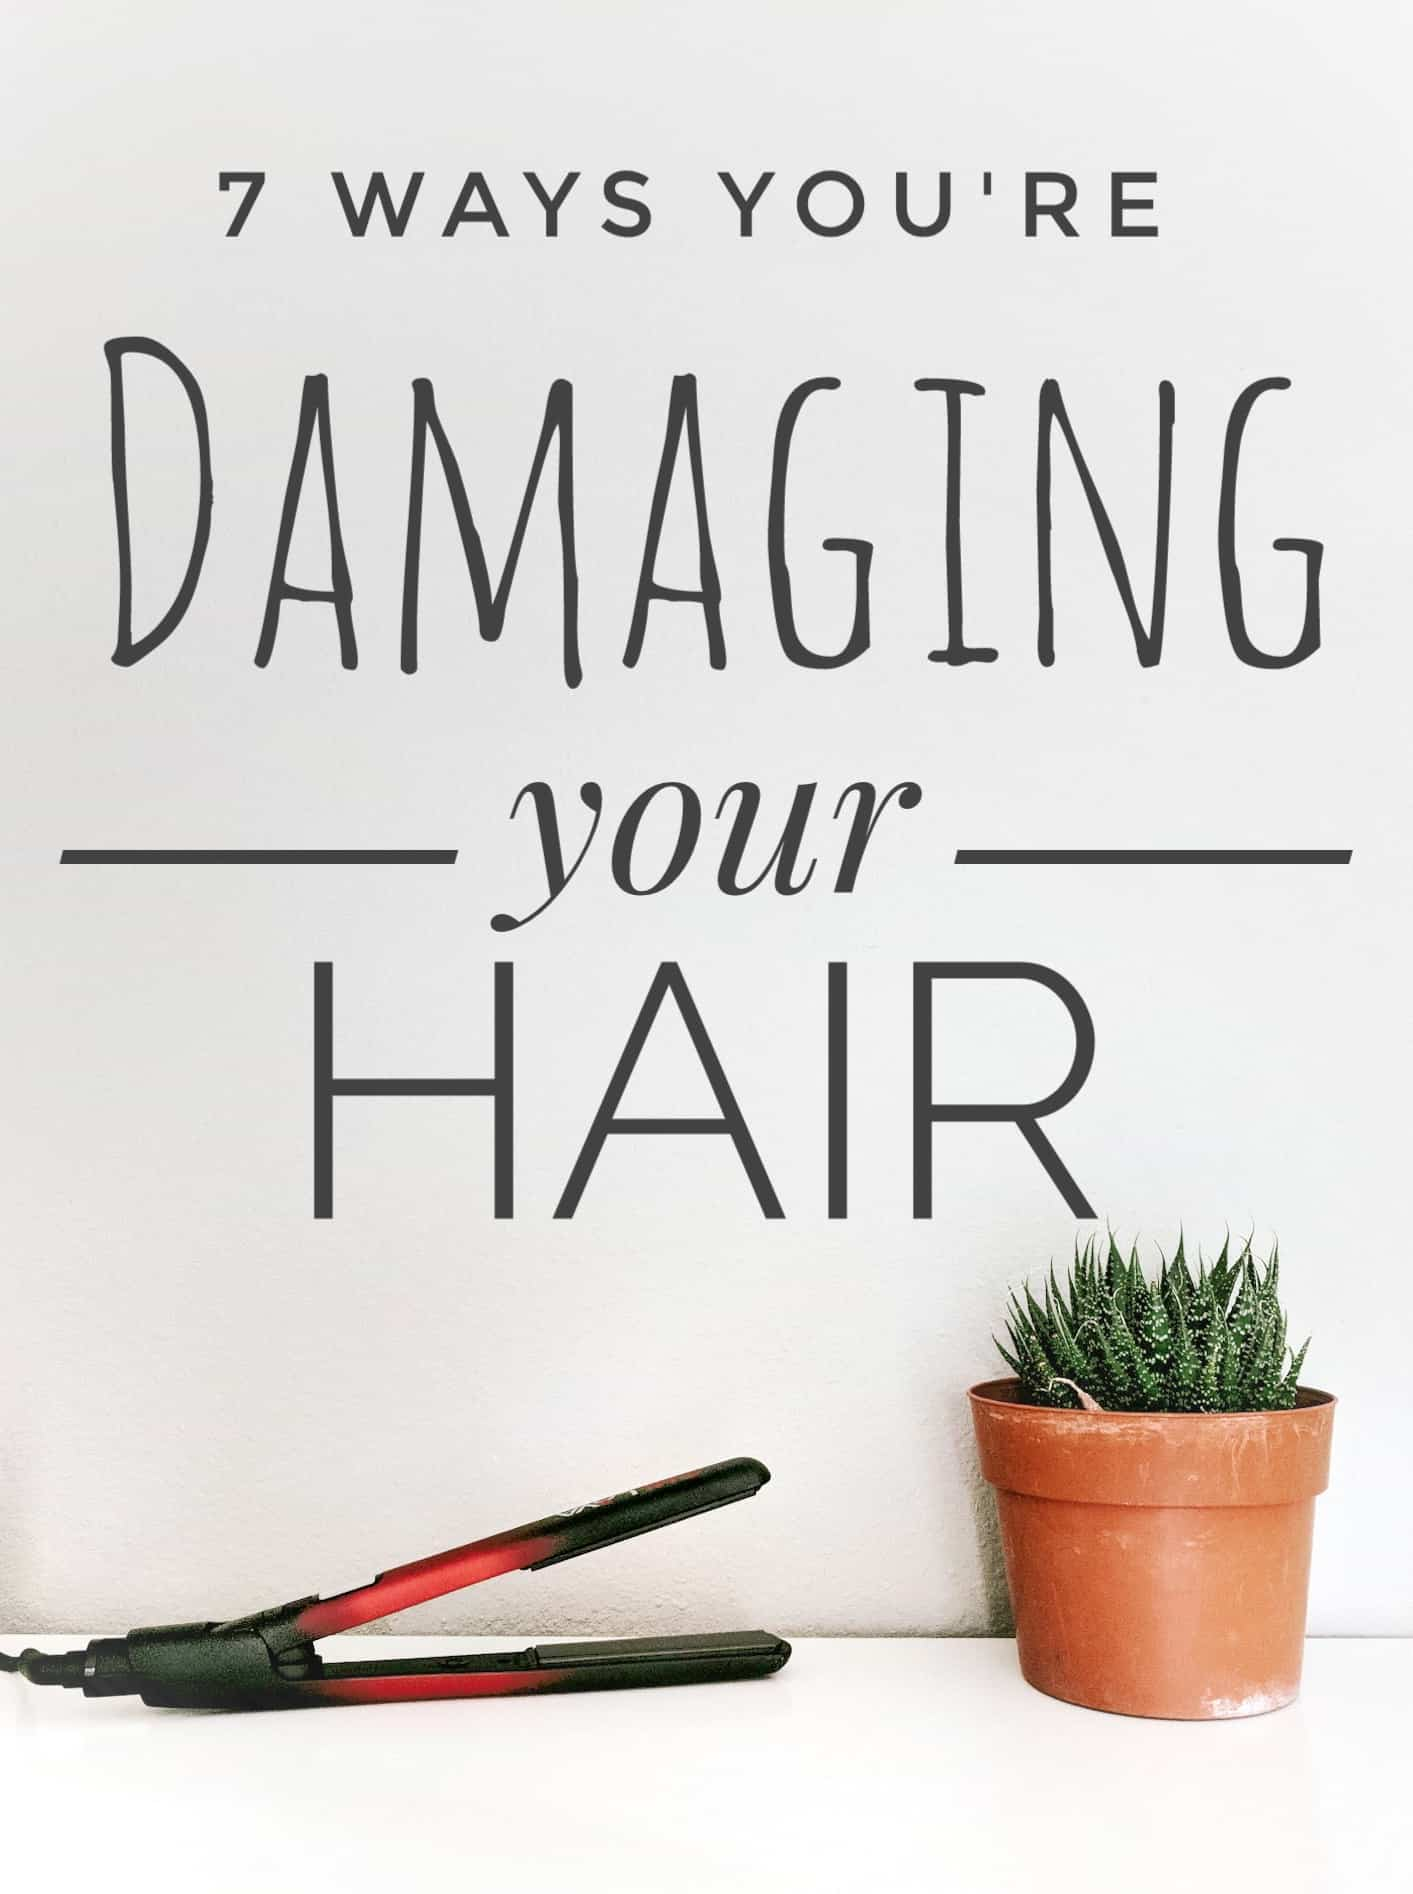 7 Ways You're Damaging Your Hair